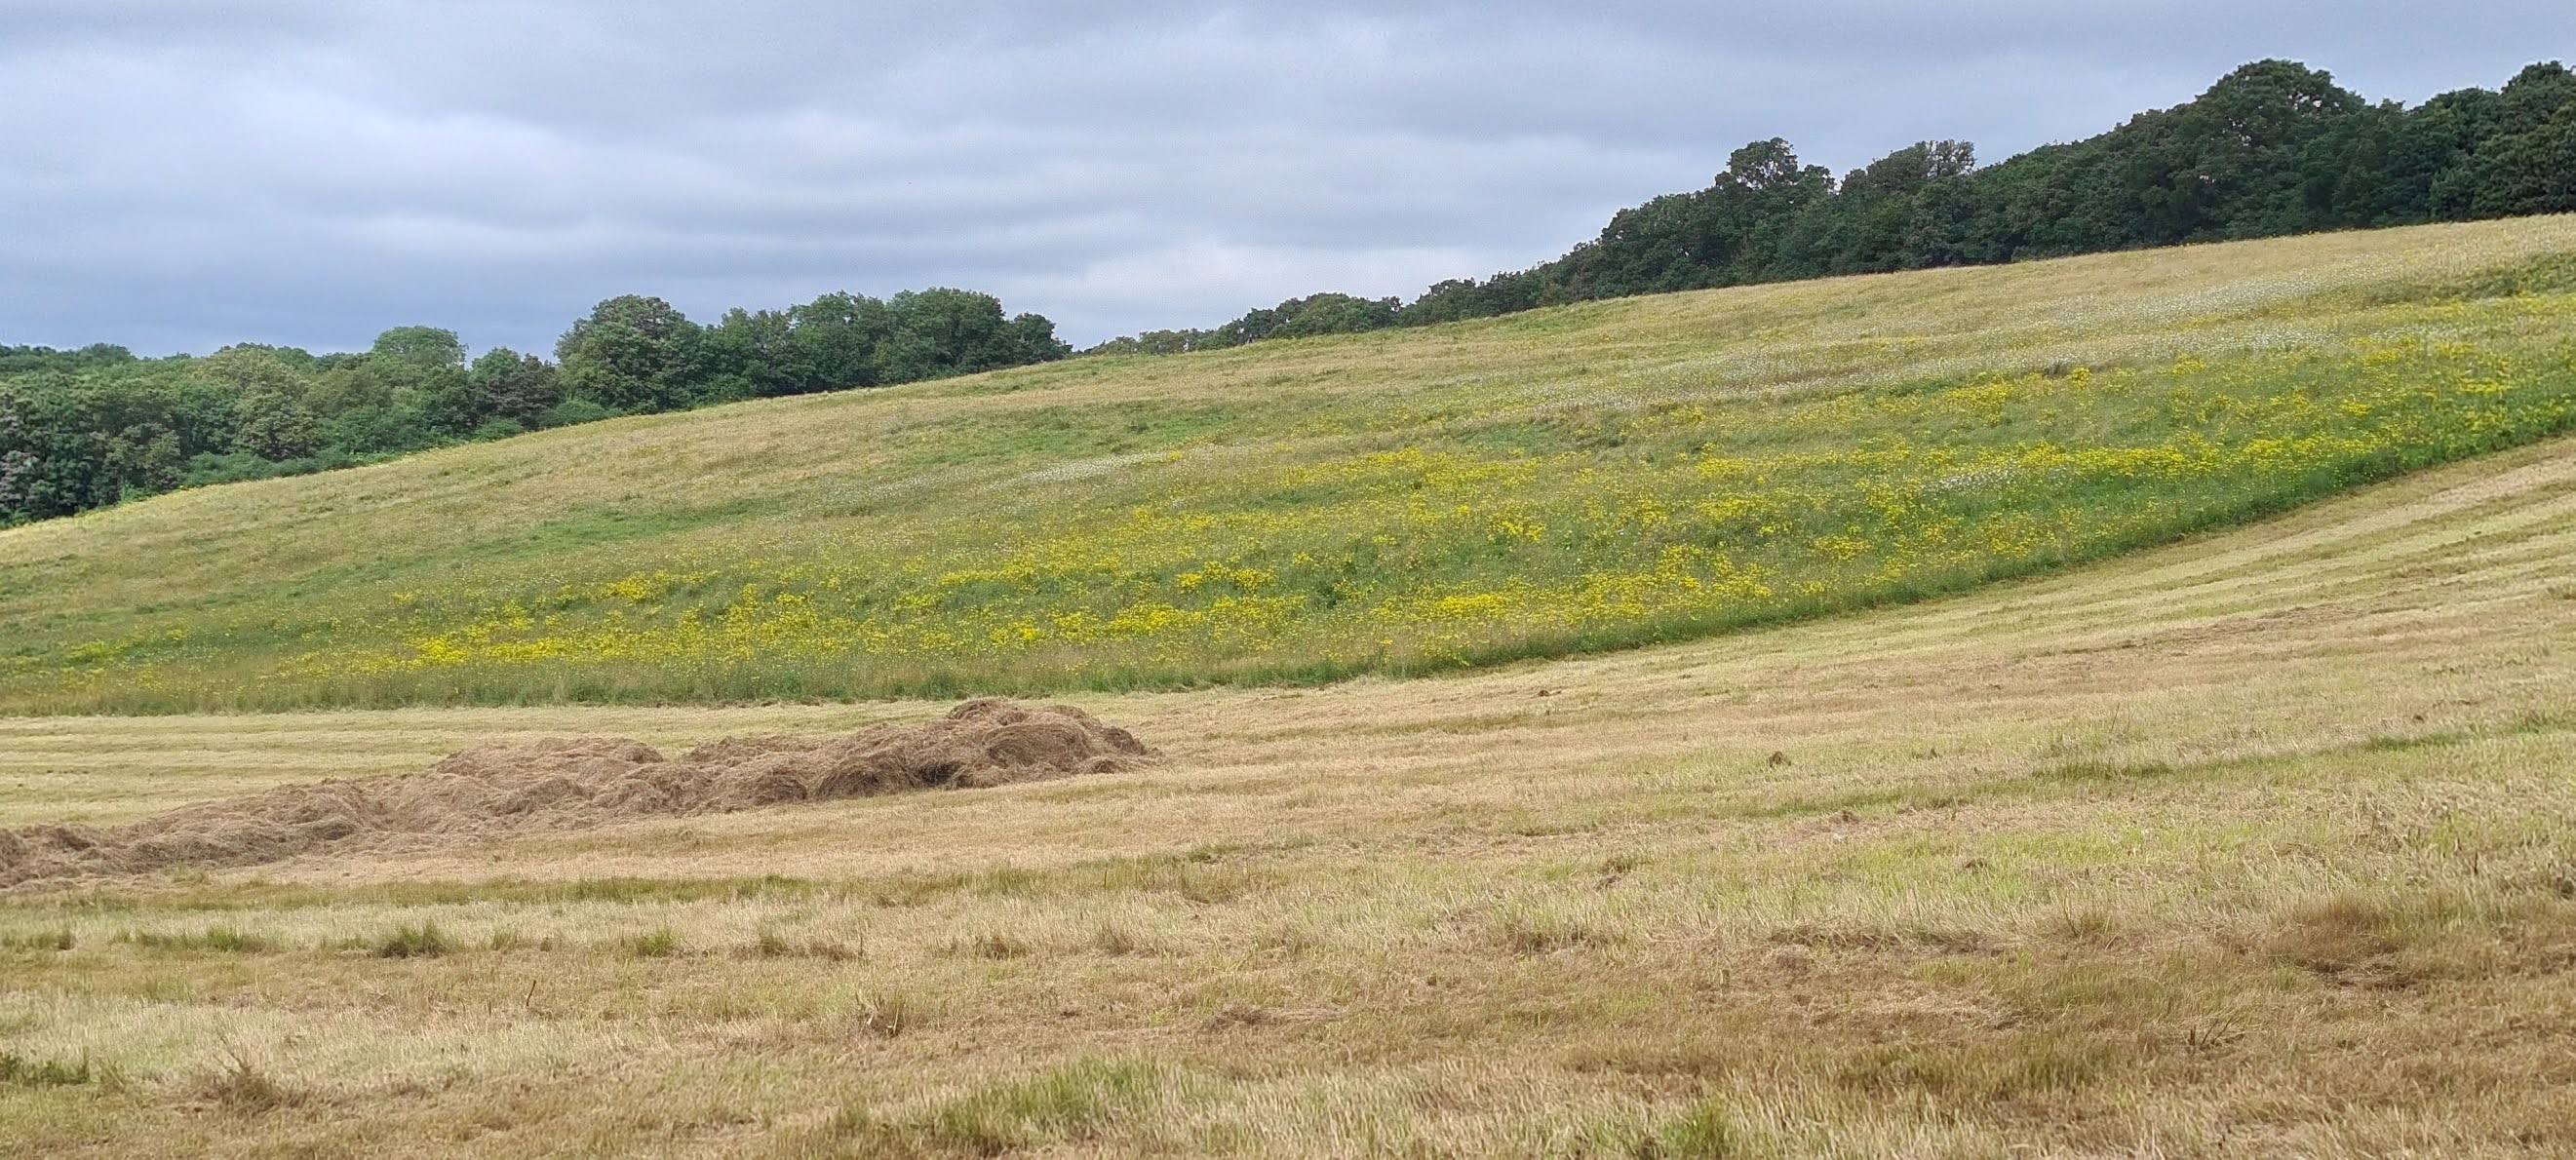 Yates Meadow in Epping Forest partially mown in August